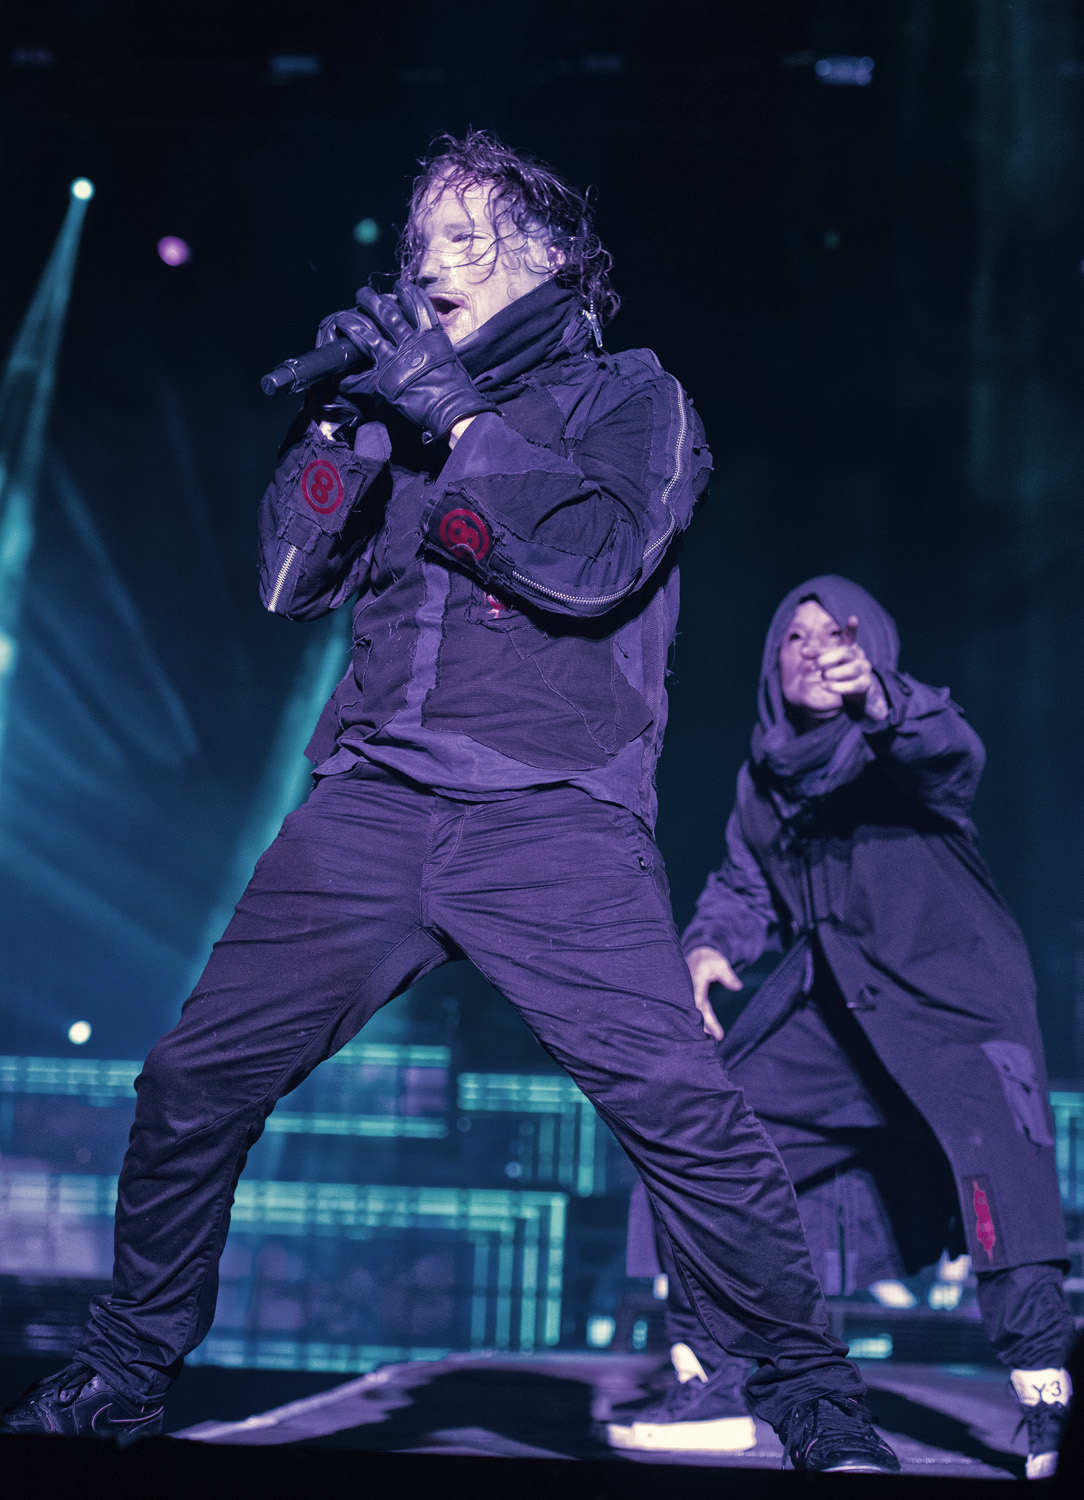 Slipknot_June2019_DownloadFestival_11.jpg